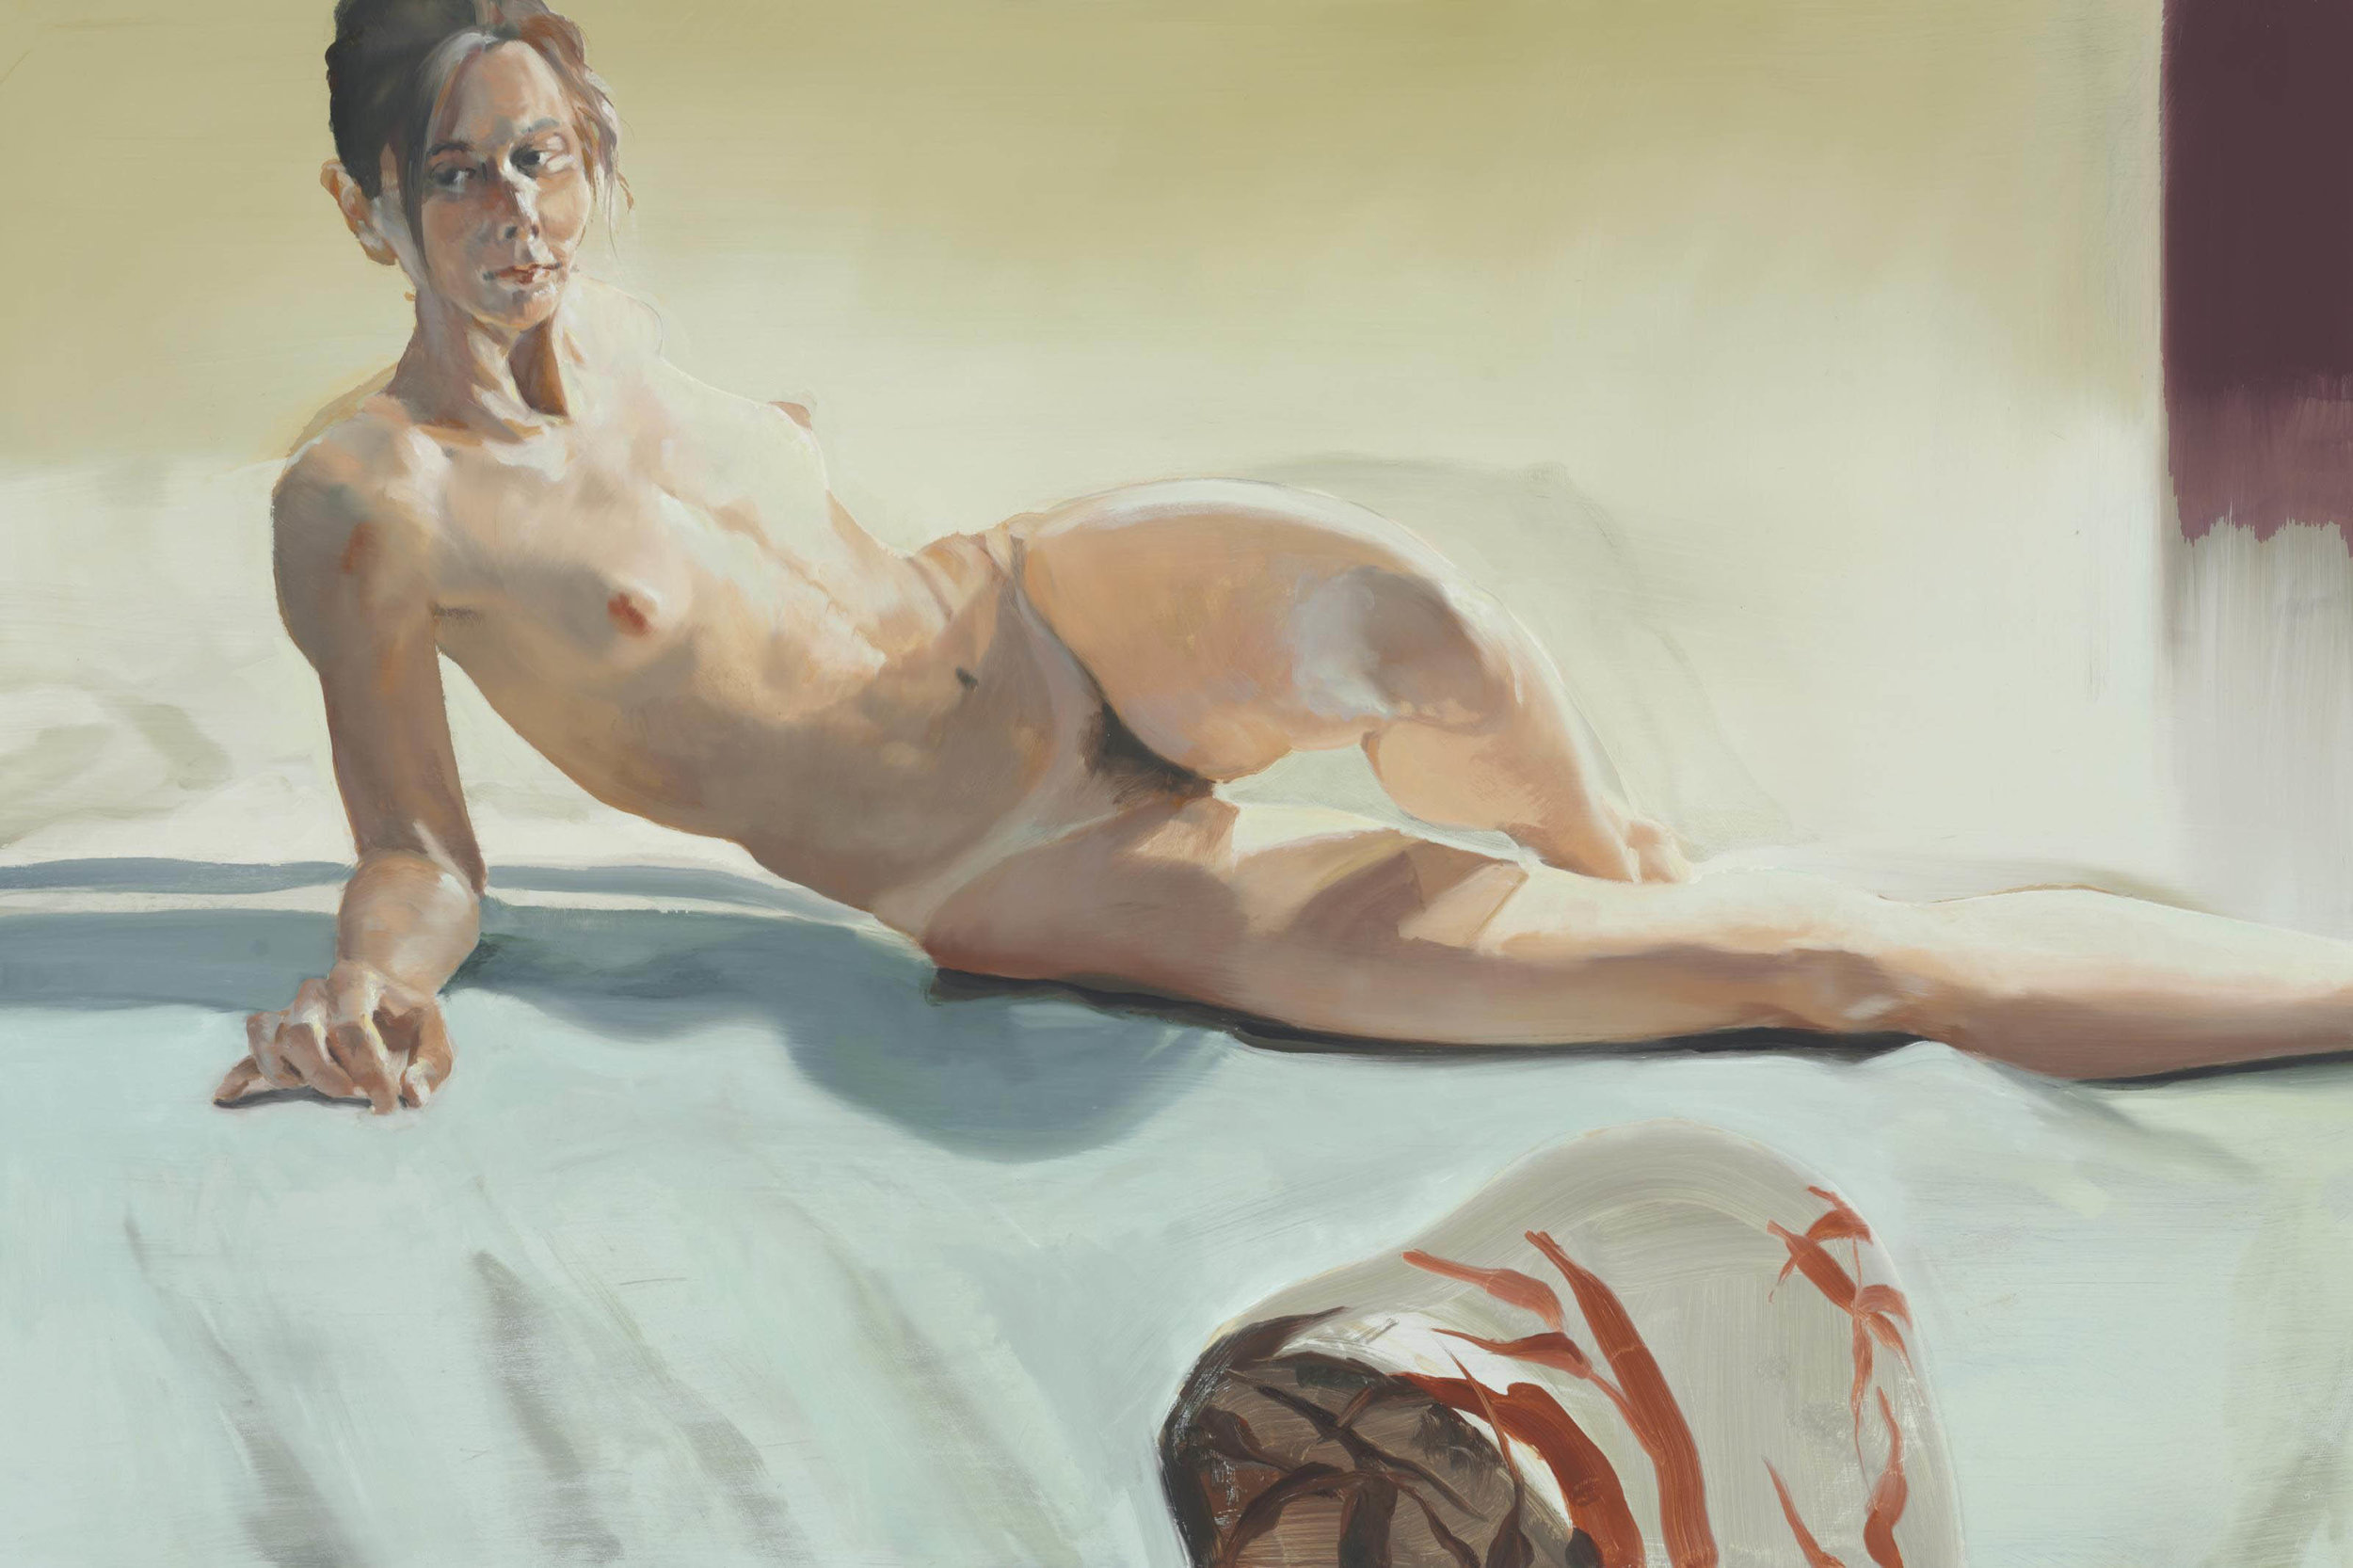 The Bed, The Chair; Stirring, 2000. Oil on linen. 40 x 60 in. (102 x 152 cm)